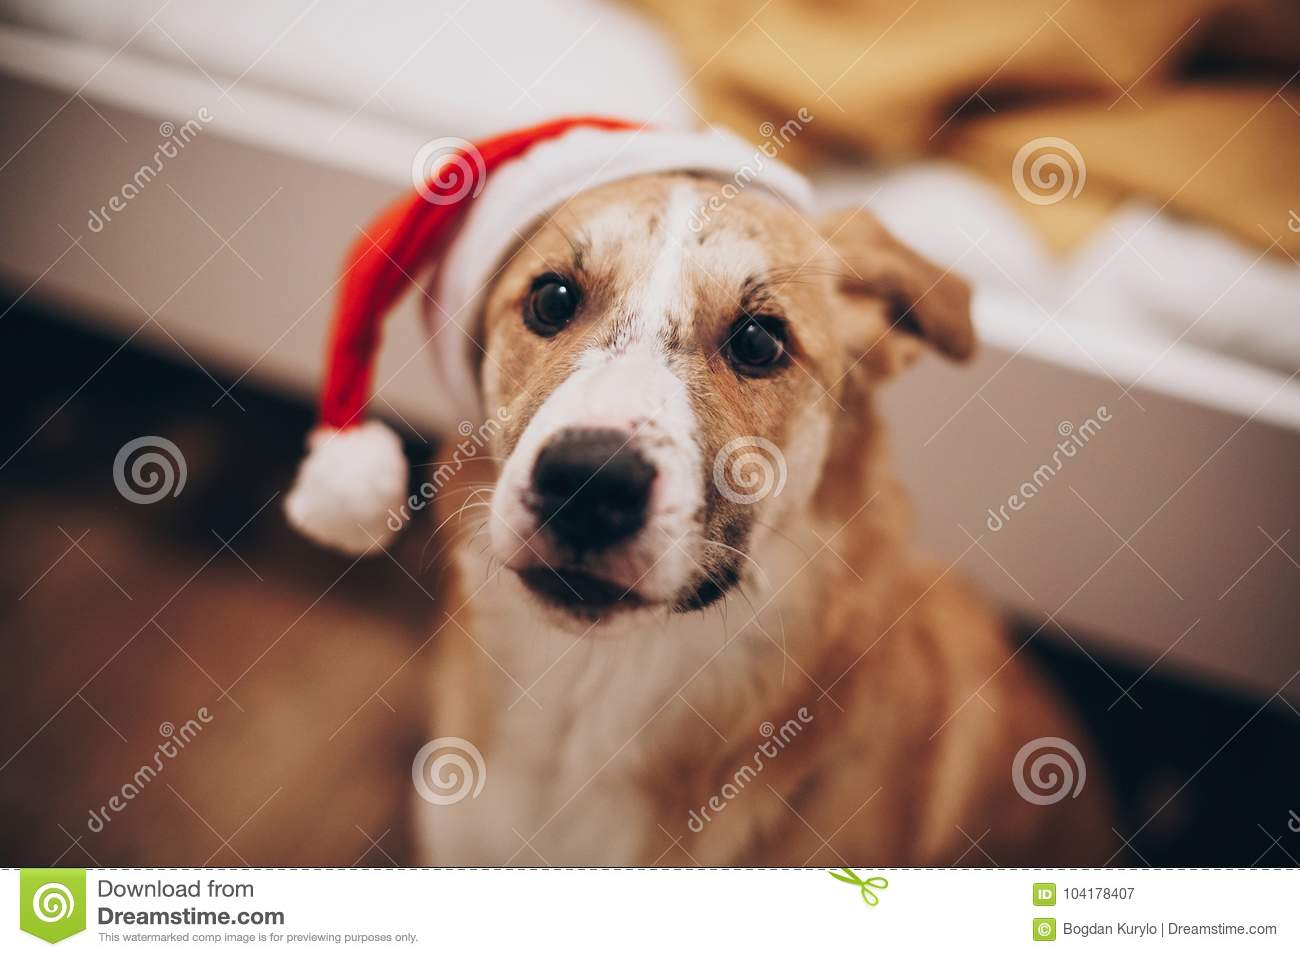 Cute Golden Dog In Red Santa Claus Hat Looking With Adorable Eye